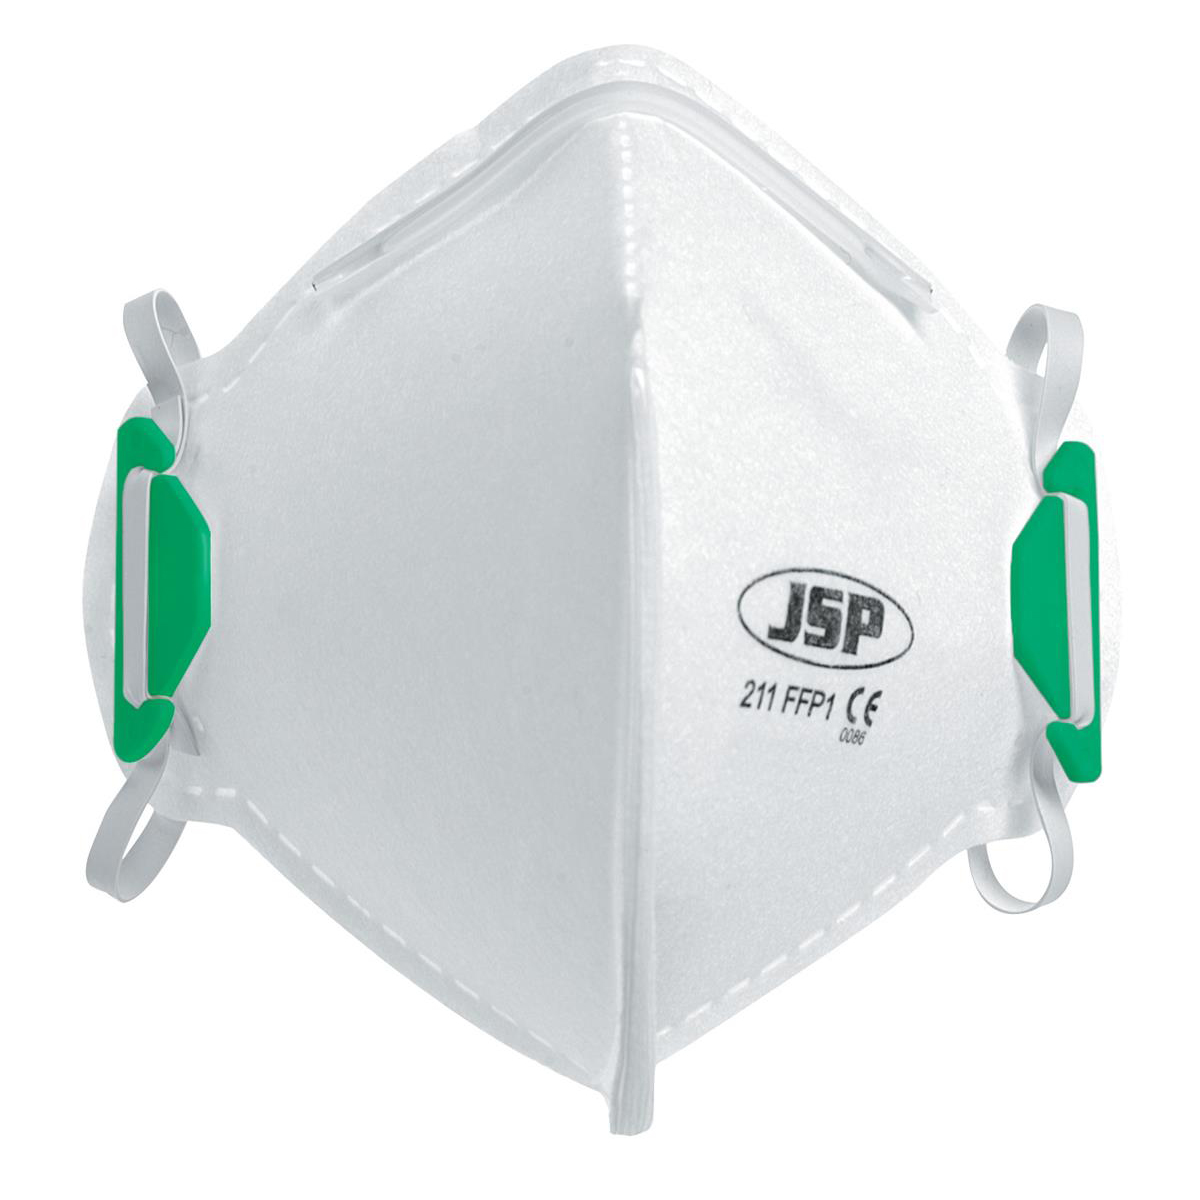 JSP Disposable Mask Fold-flat FFP1 Class 1 EN149:2001 & A1:2009 Standard Ref BEA110-101-000 Pack 20